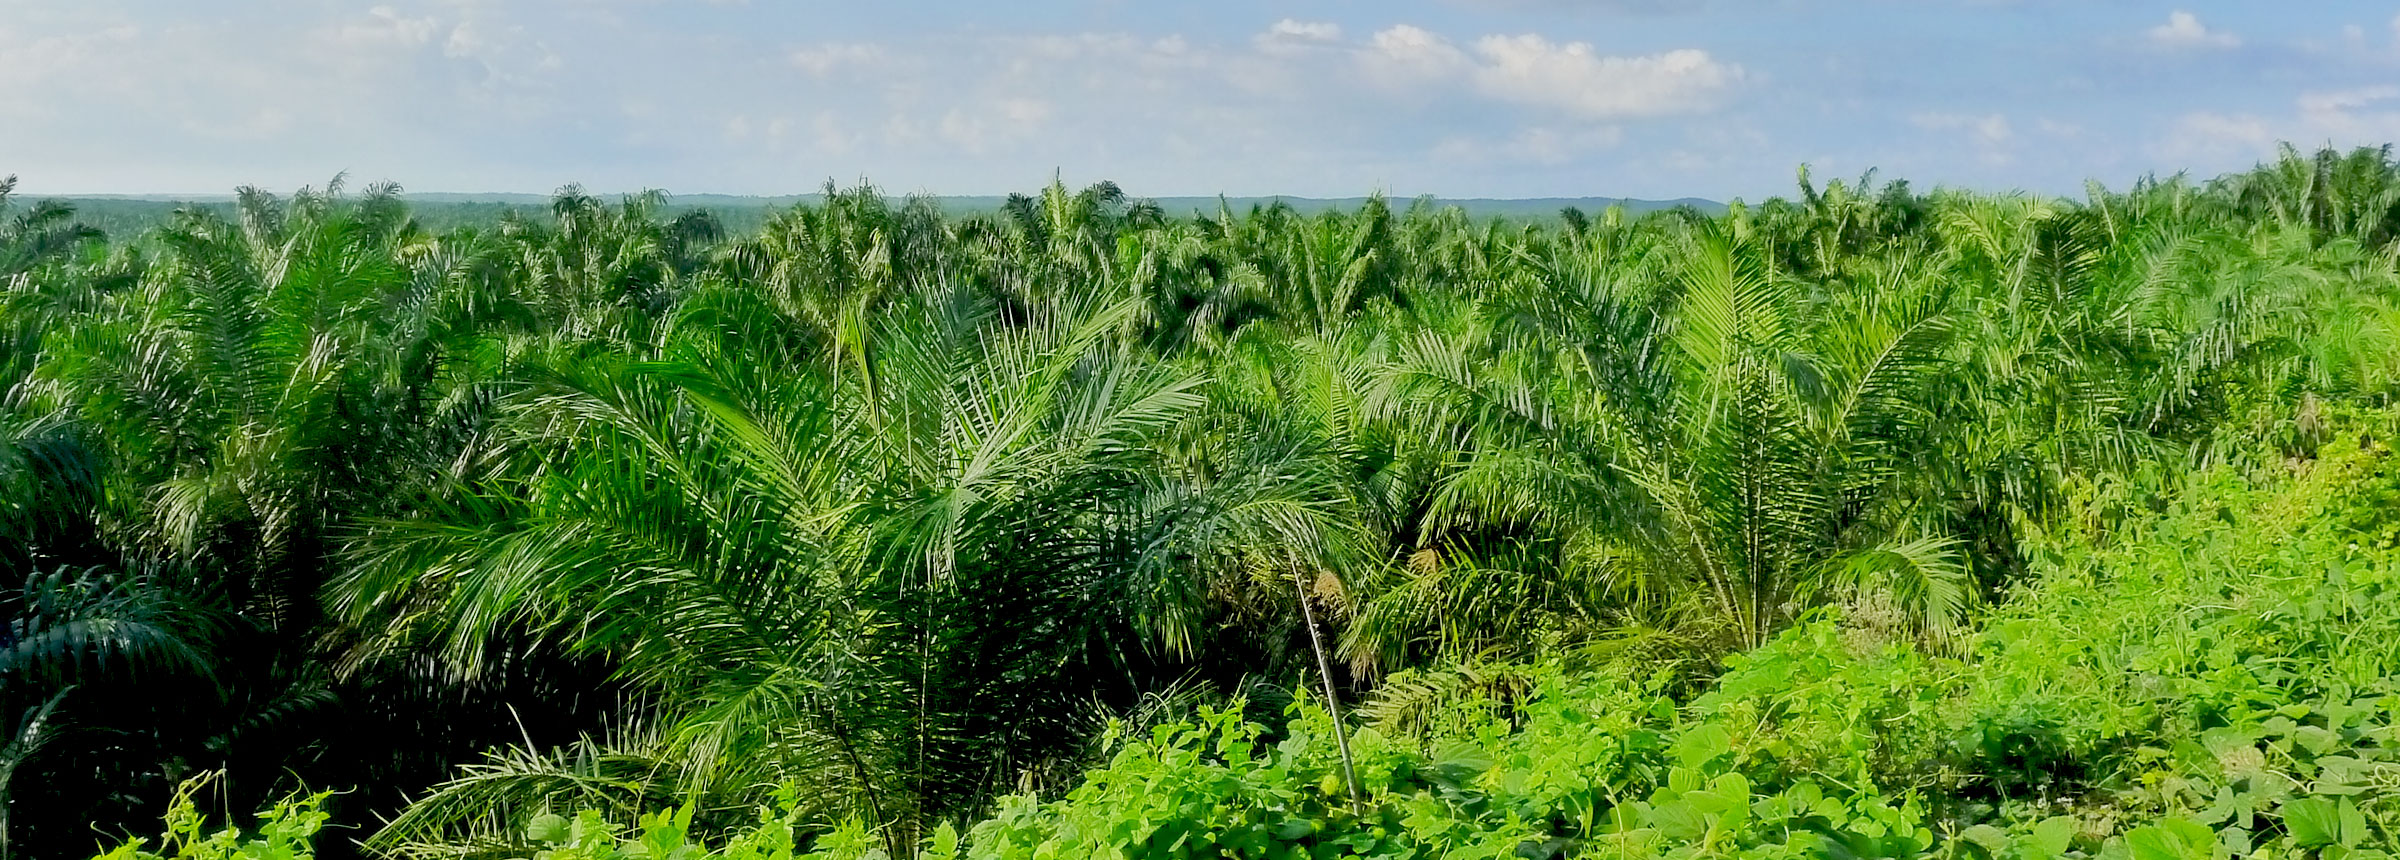 Palm trees in Indonesia